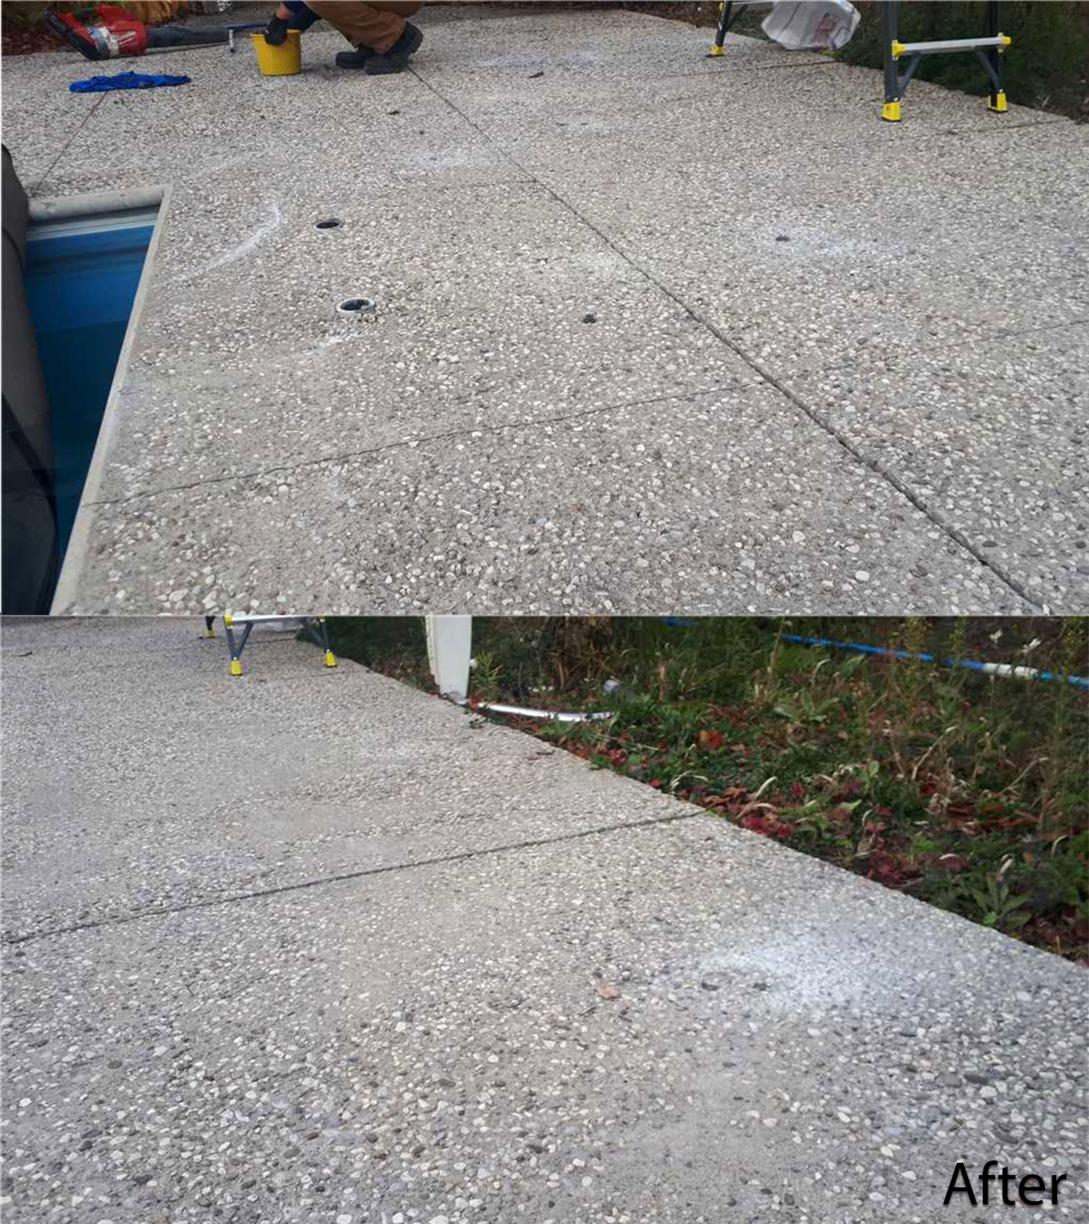 Cracks and Sinking Concrete Causes Safety Hazard in Creemore, Ontario - After Photo